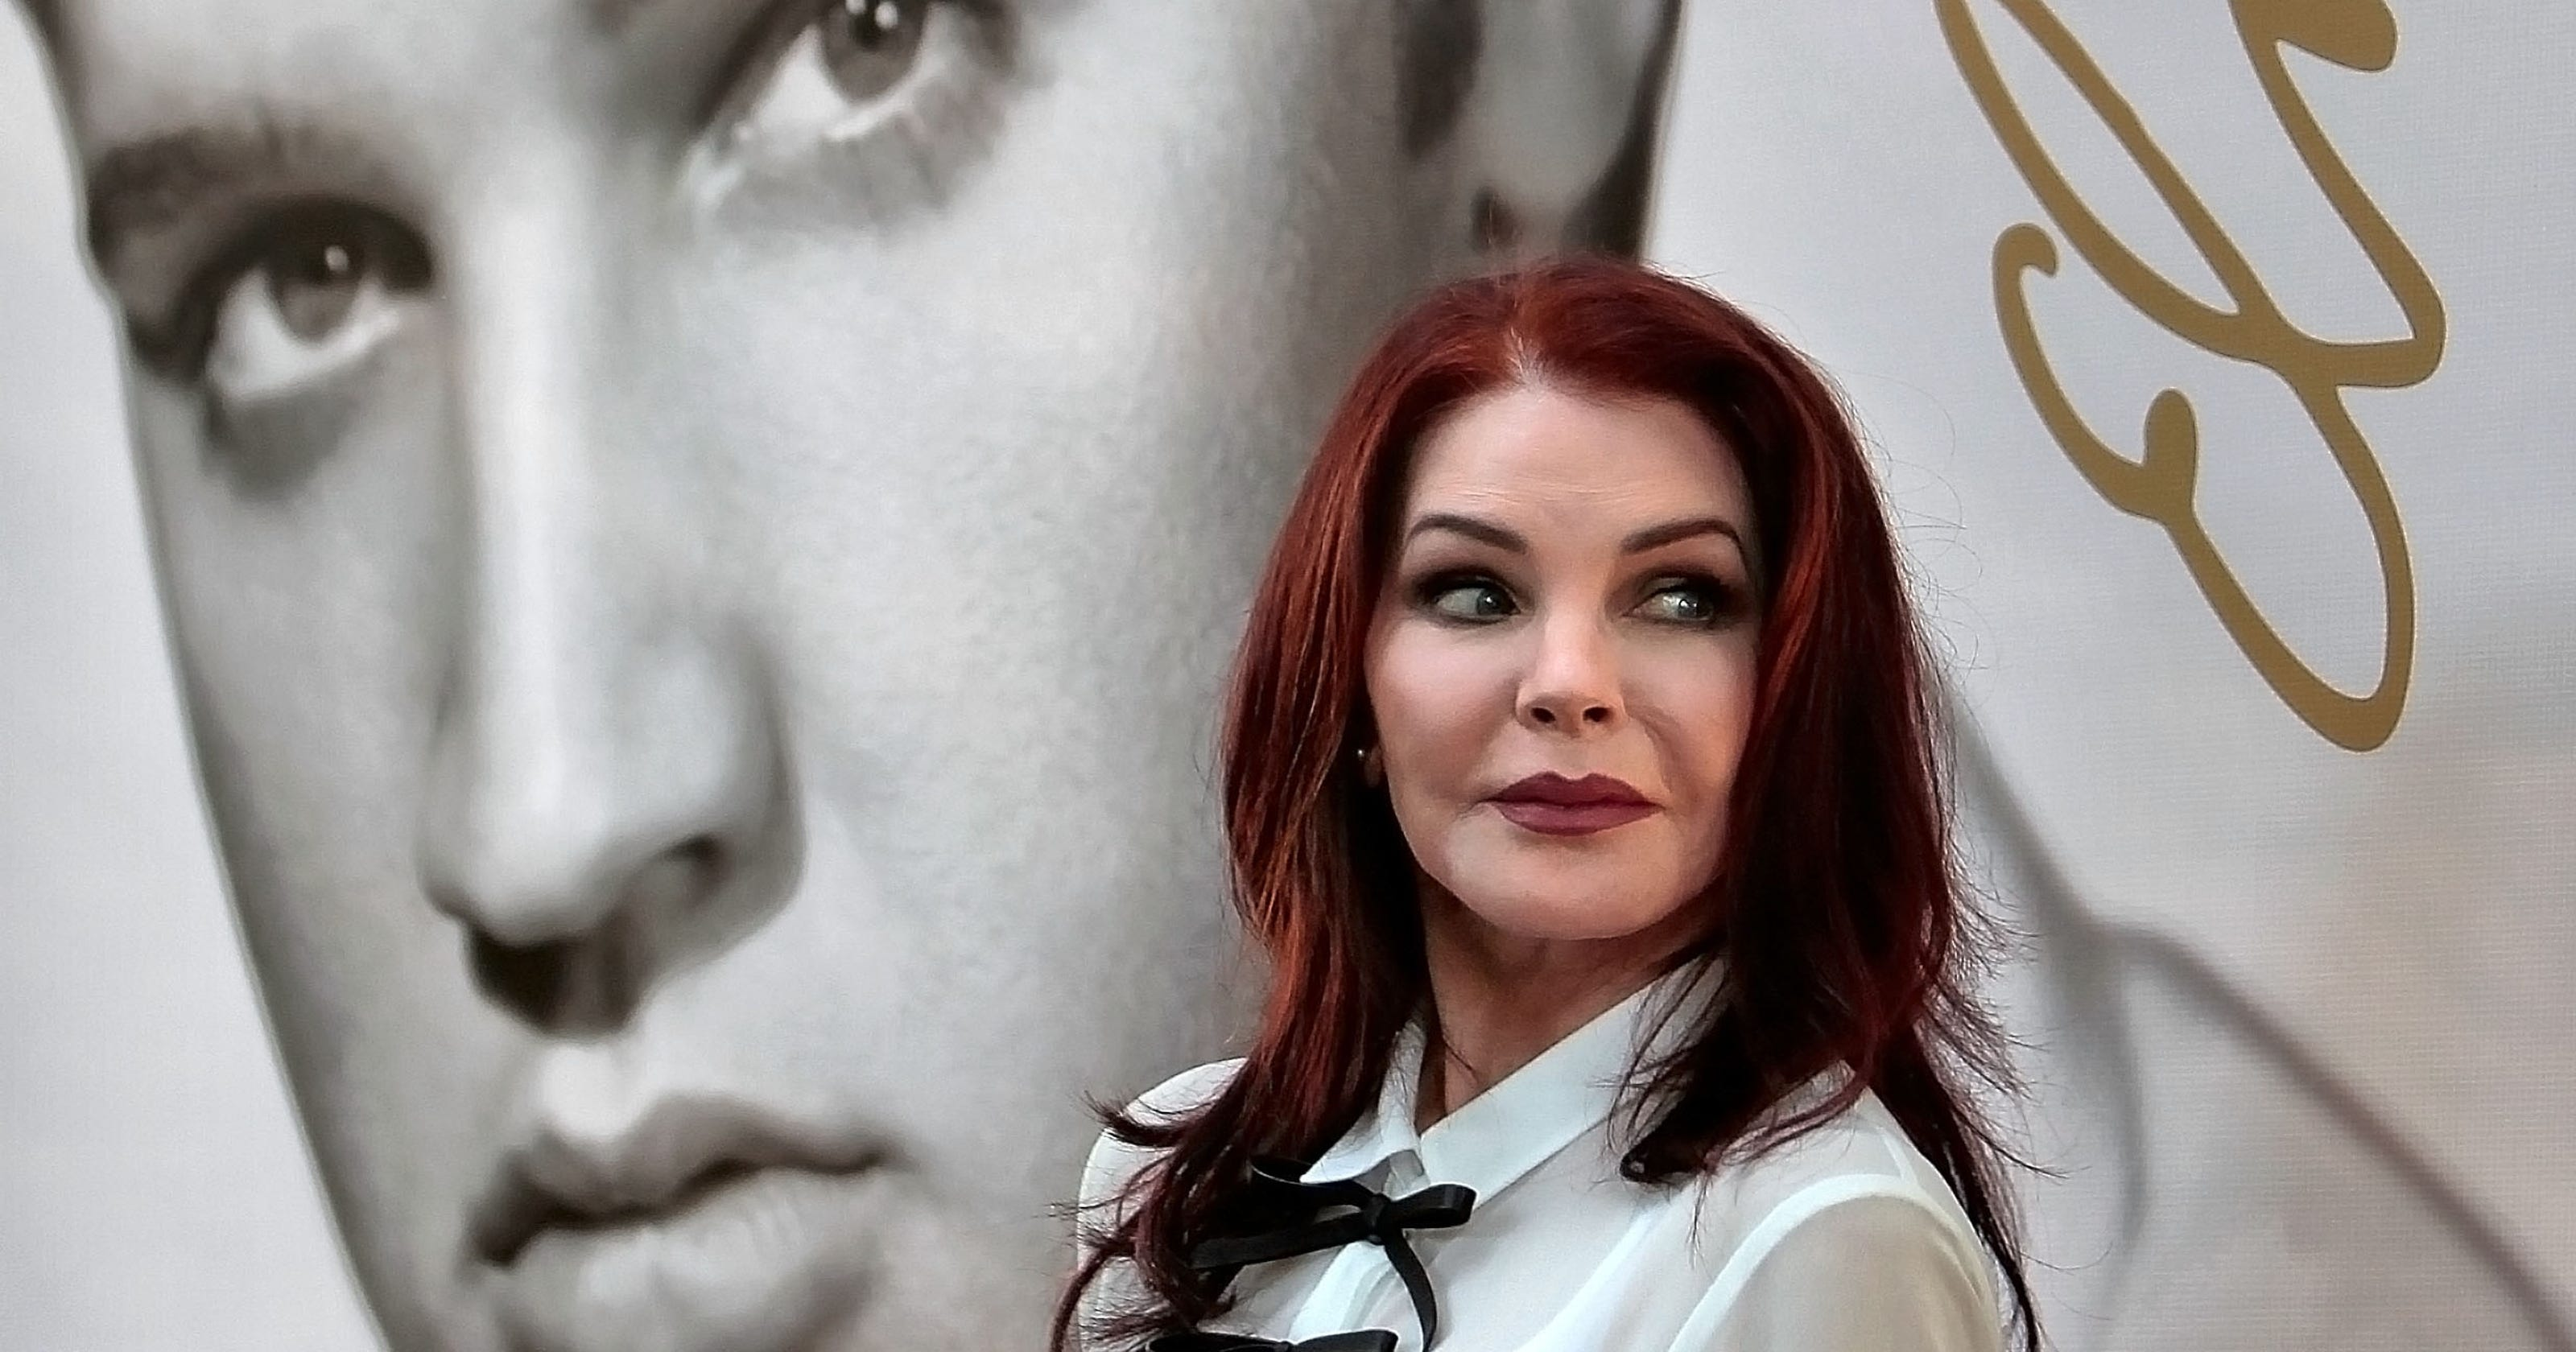 Priscilla Presley sets the record straight on life with Elvis